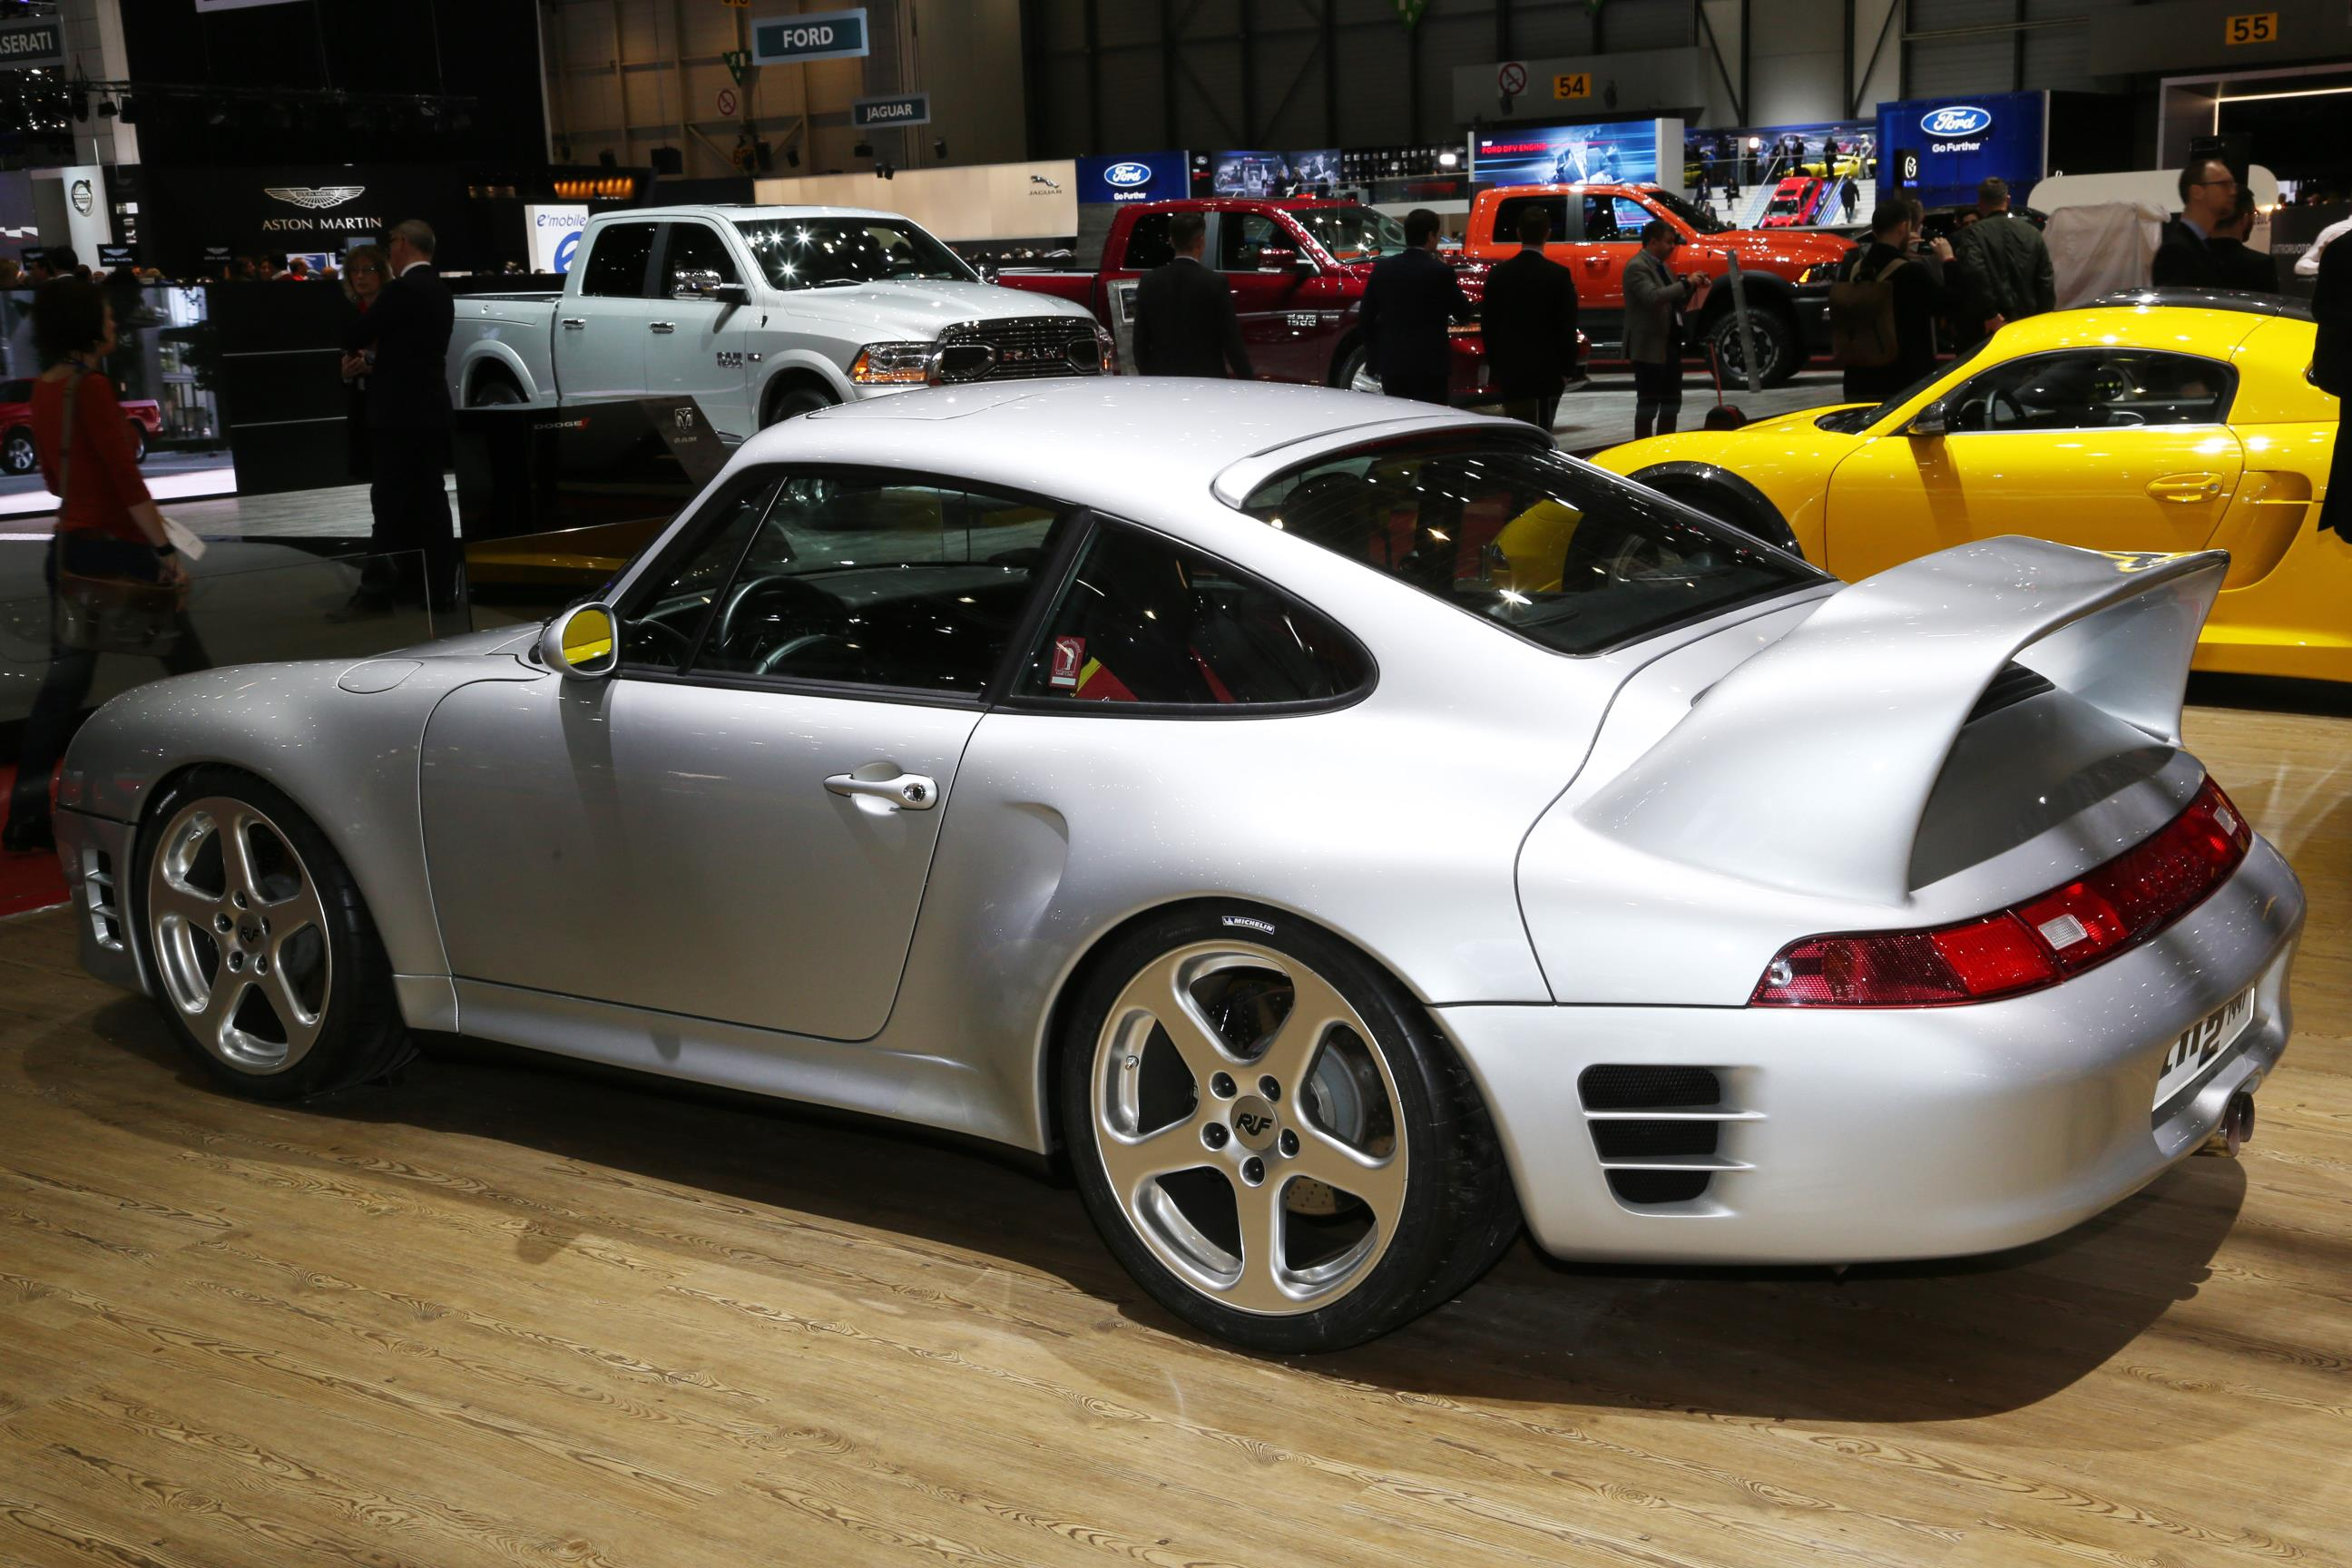 2017 ruf ctr unveiled in geneva first rear engine carbon monocoque road car. Black Bedroom Furniture Sets. Home Design Ideas